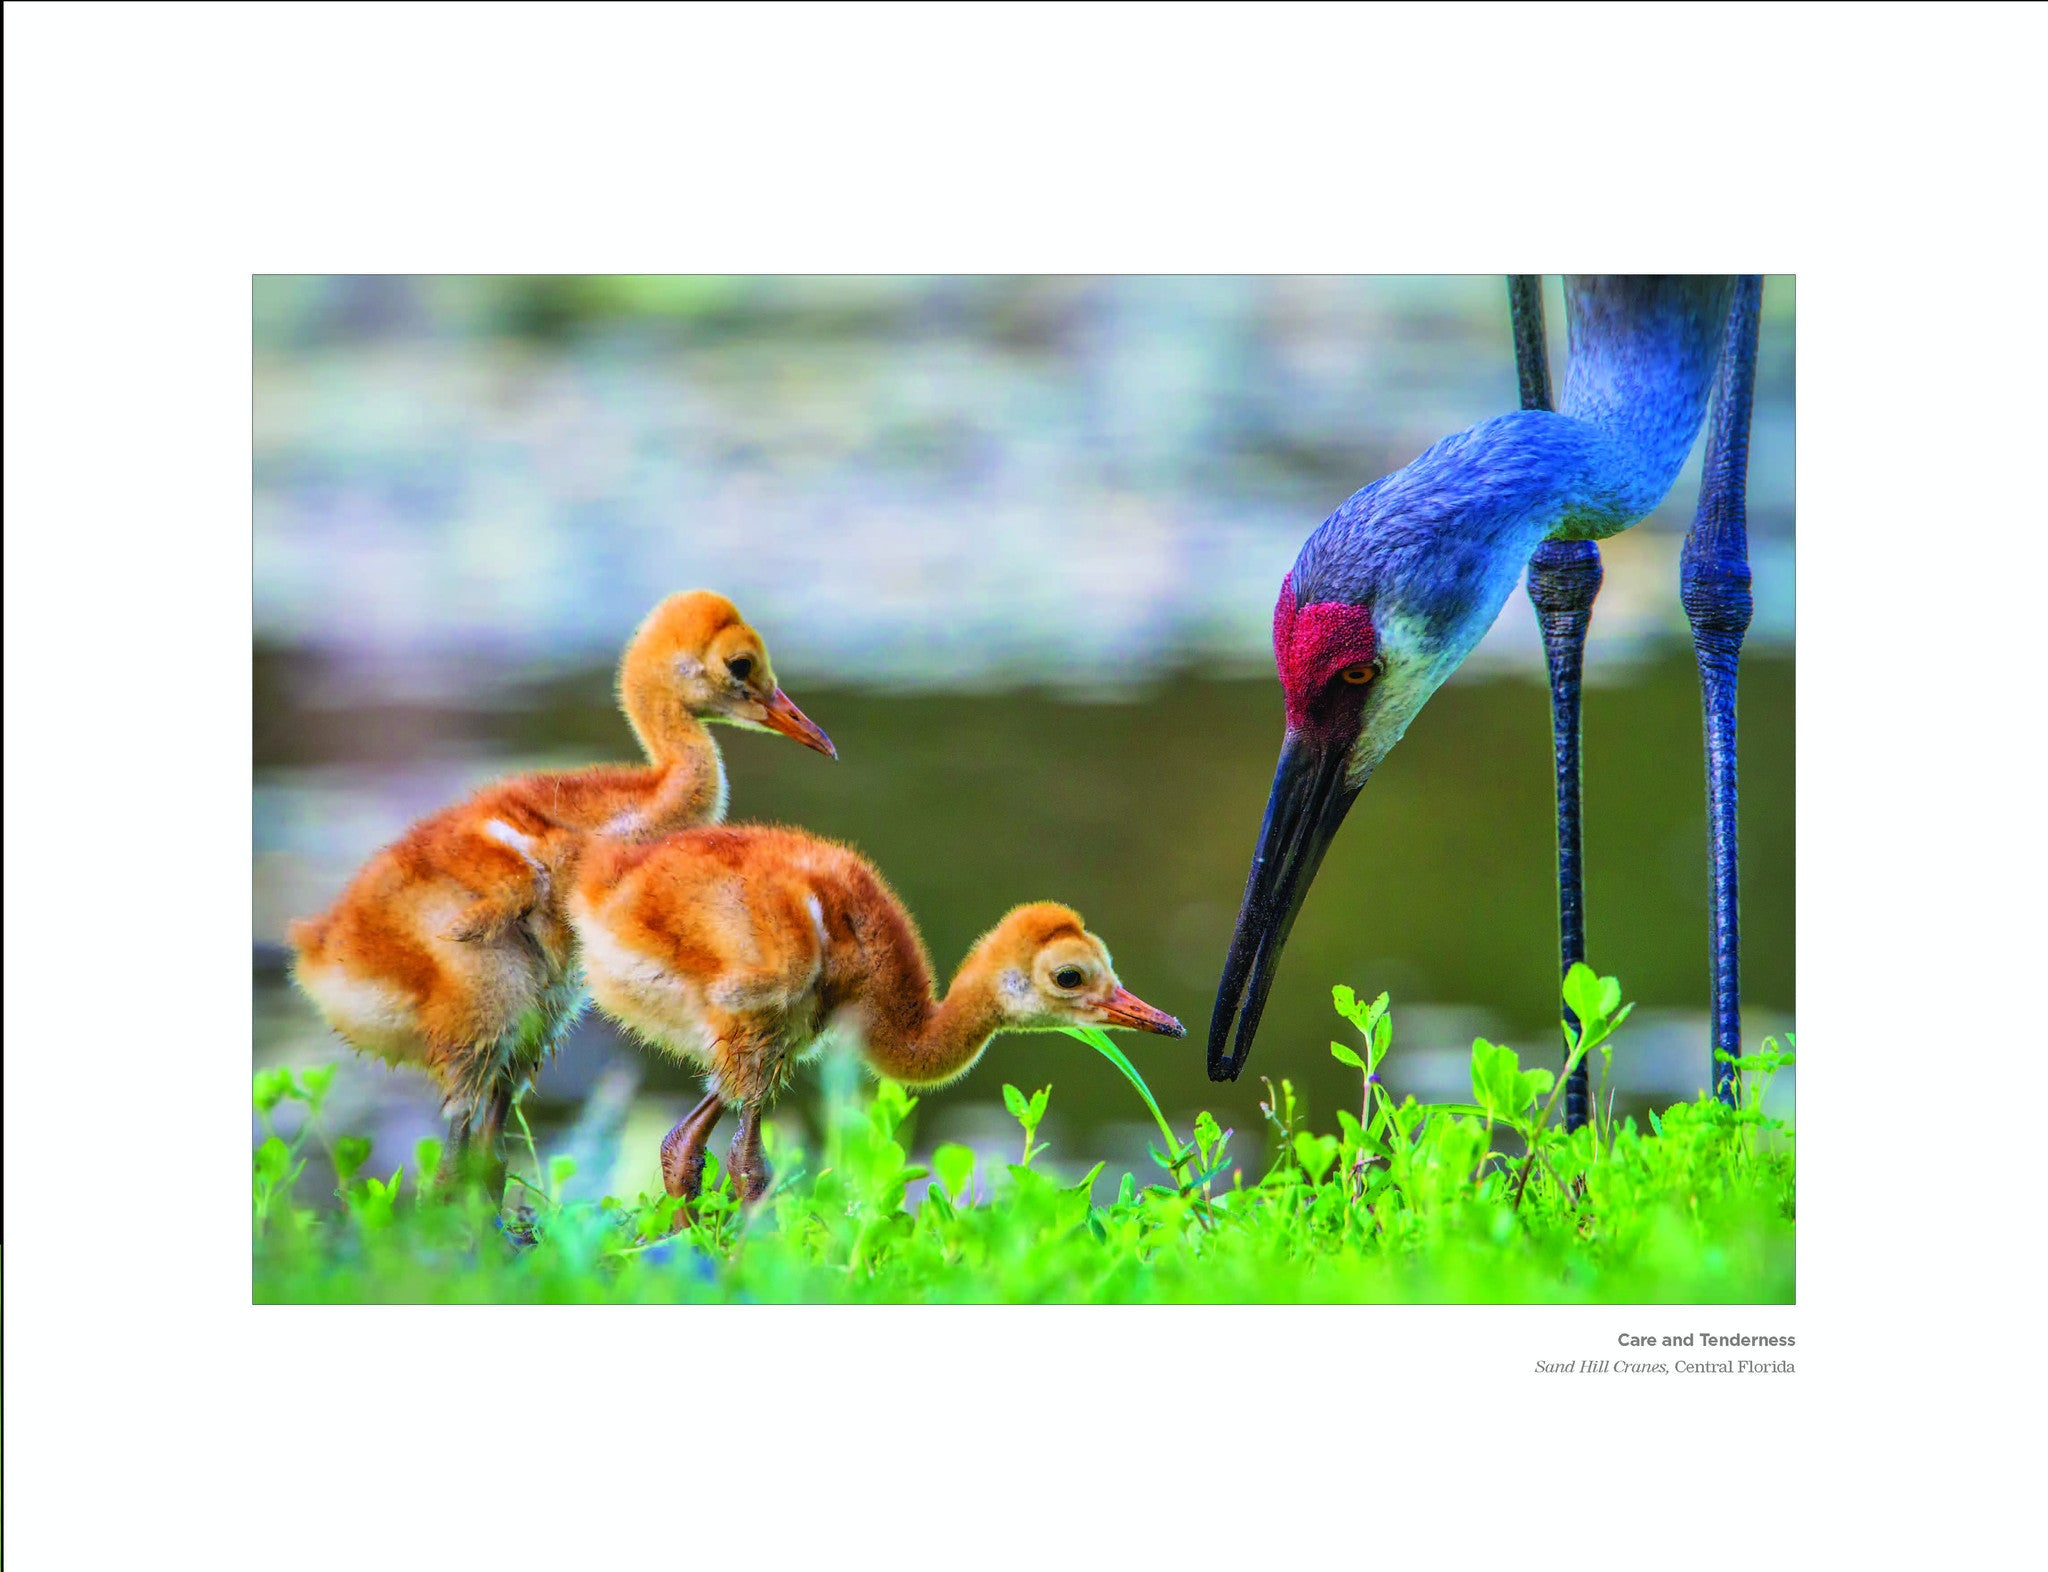 Care and Tenderness: Sand Hill Cranes Birds, Central Florida Beholding Nature Eric Horan photography book